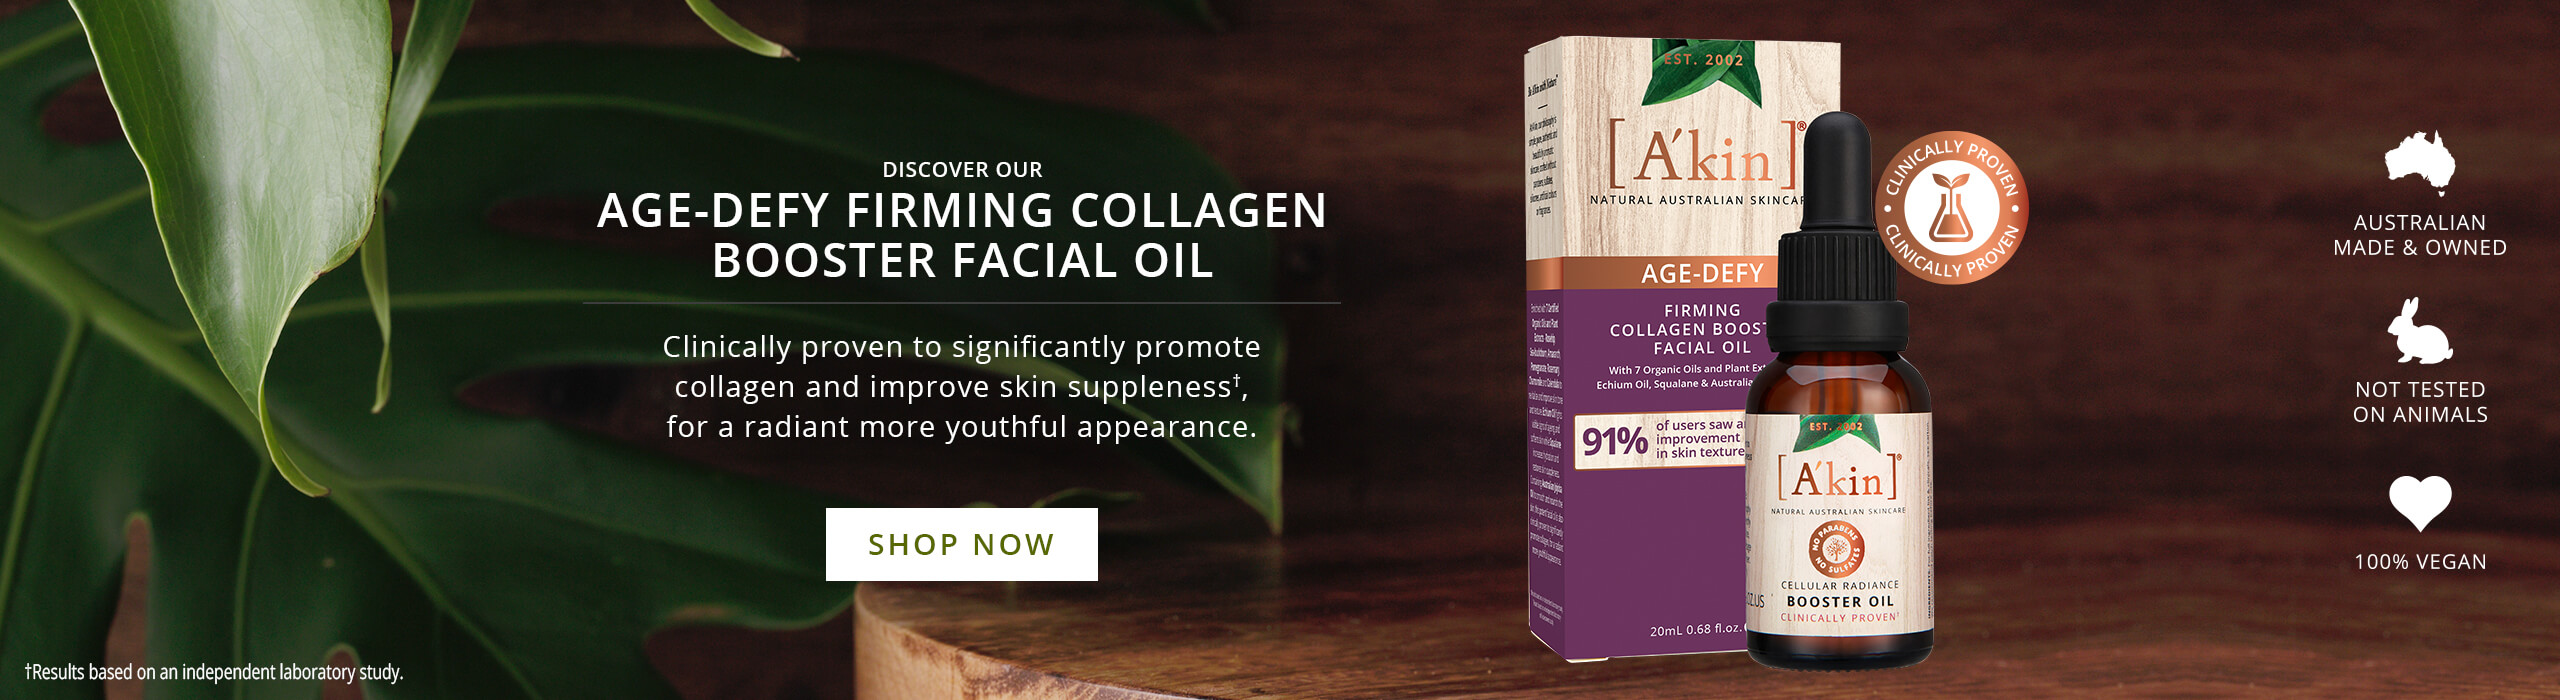 Shop A'kin Age-Defy Firming Collagen Booster Facial Oil